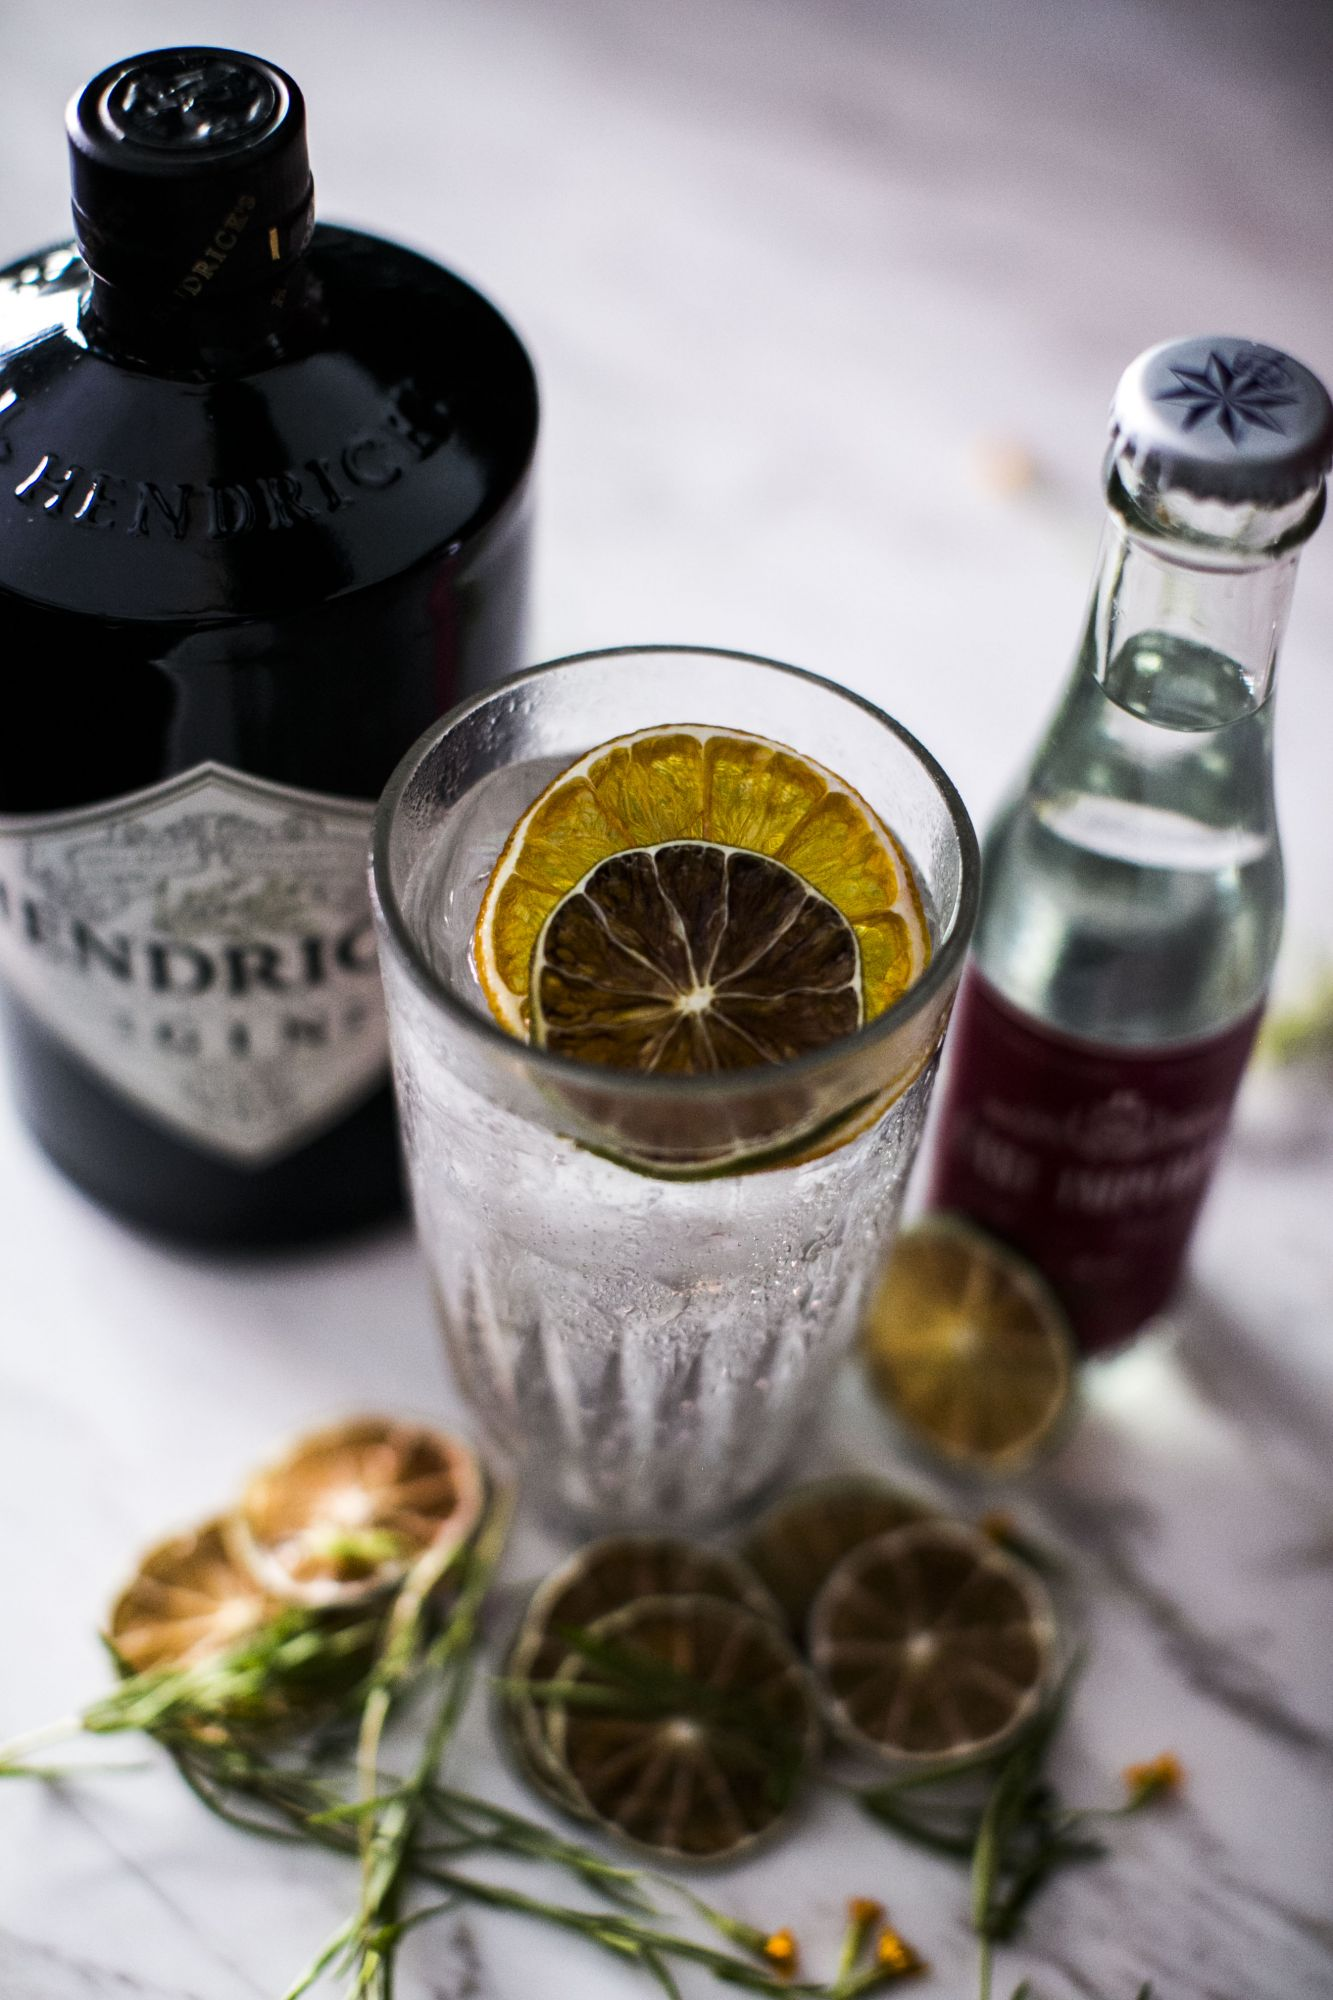 Image: courtesy of East Imperial Gin Jubilee